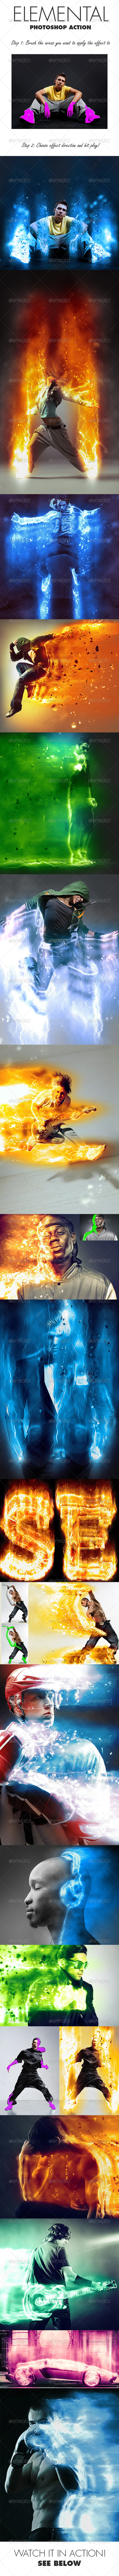 GraphicRiver Elemental Photoshop Action 8032150